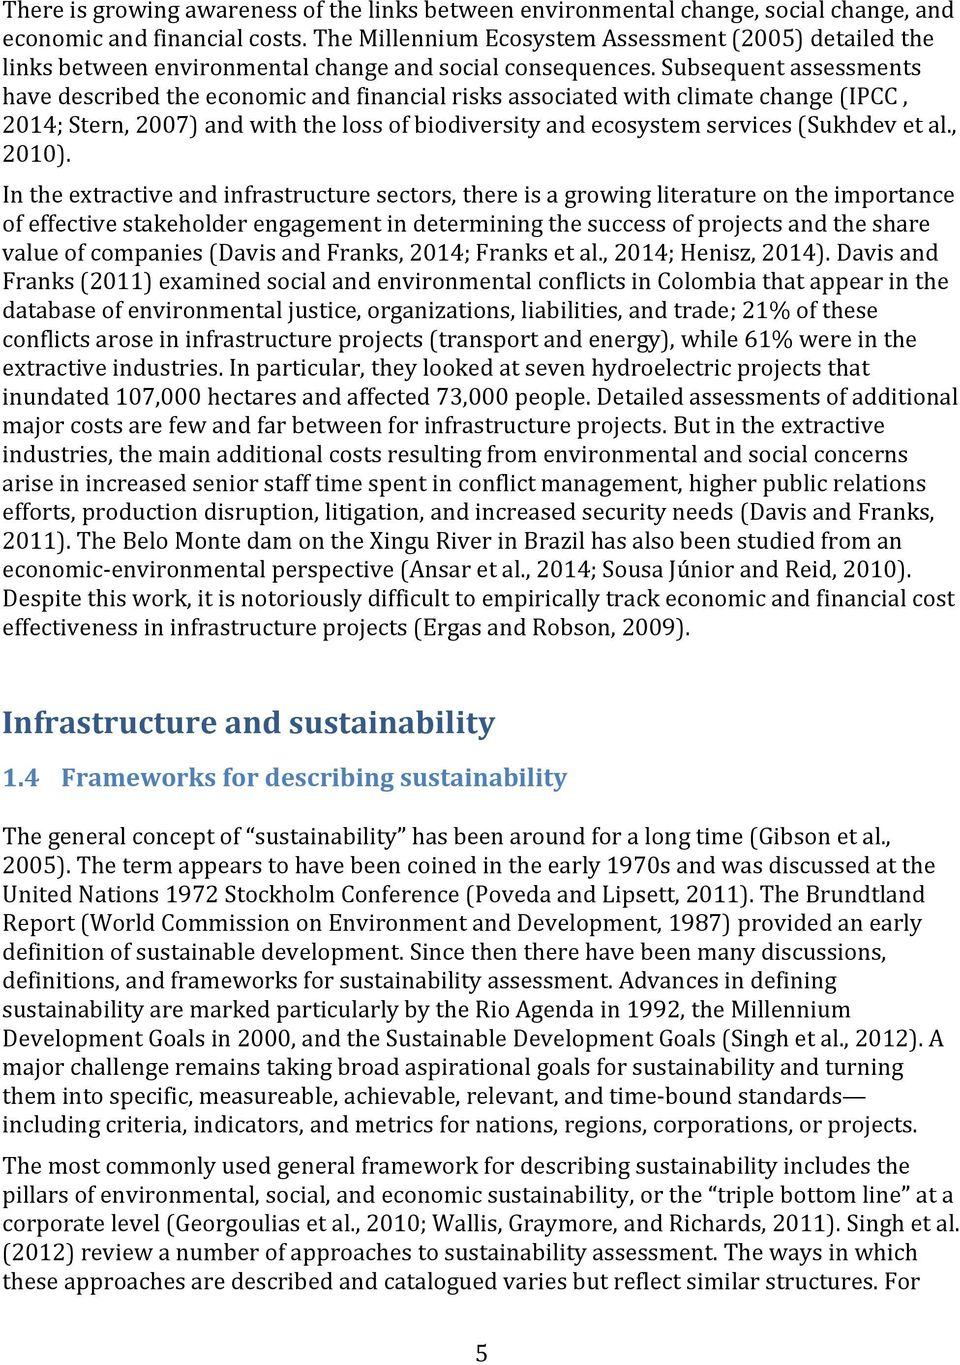 Subsequent assessments have described the economic and financial risks associated with climate change (IPCC, 2014; Stern, 2007) and with the loss of biodiversity and ecosystem services (Sukhdev et al.